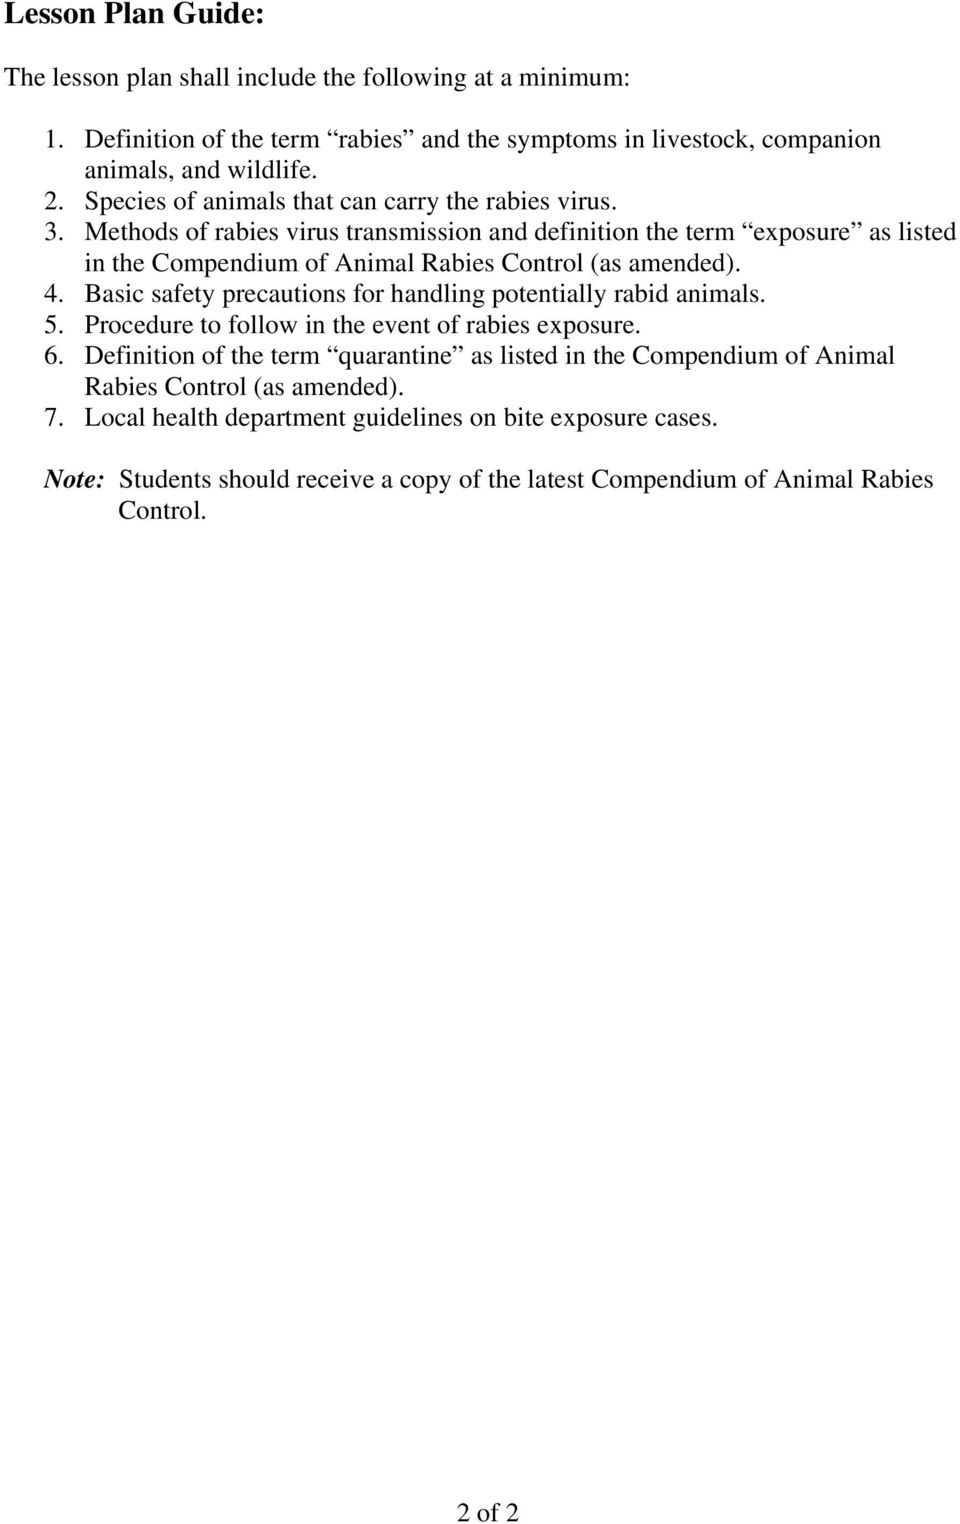 Methods of rabies virus transmission and definition the term exposure as listed in the Compendium of Animal Rabies Control (as amended). 4.